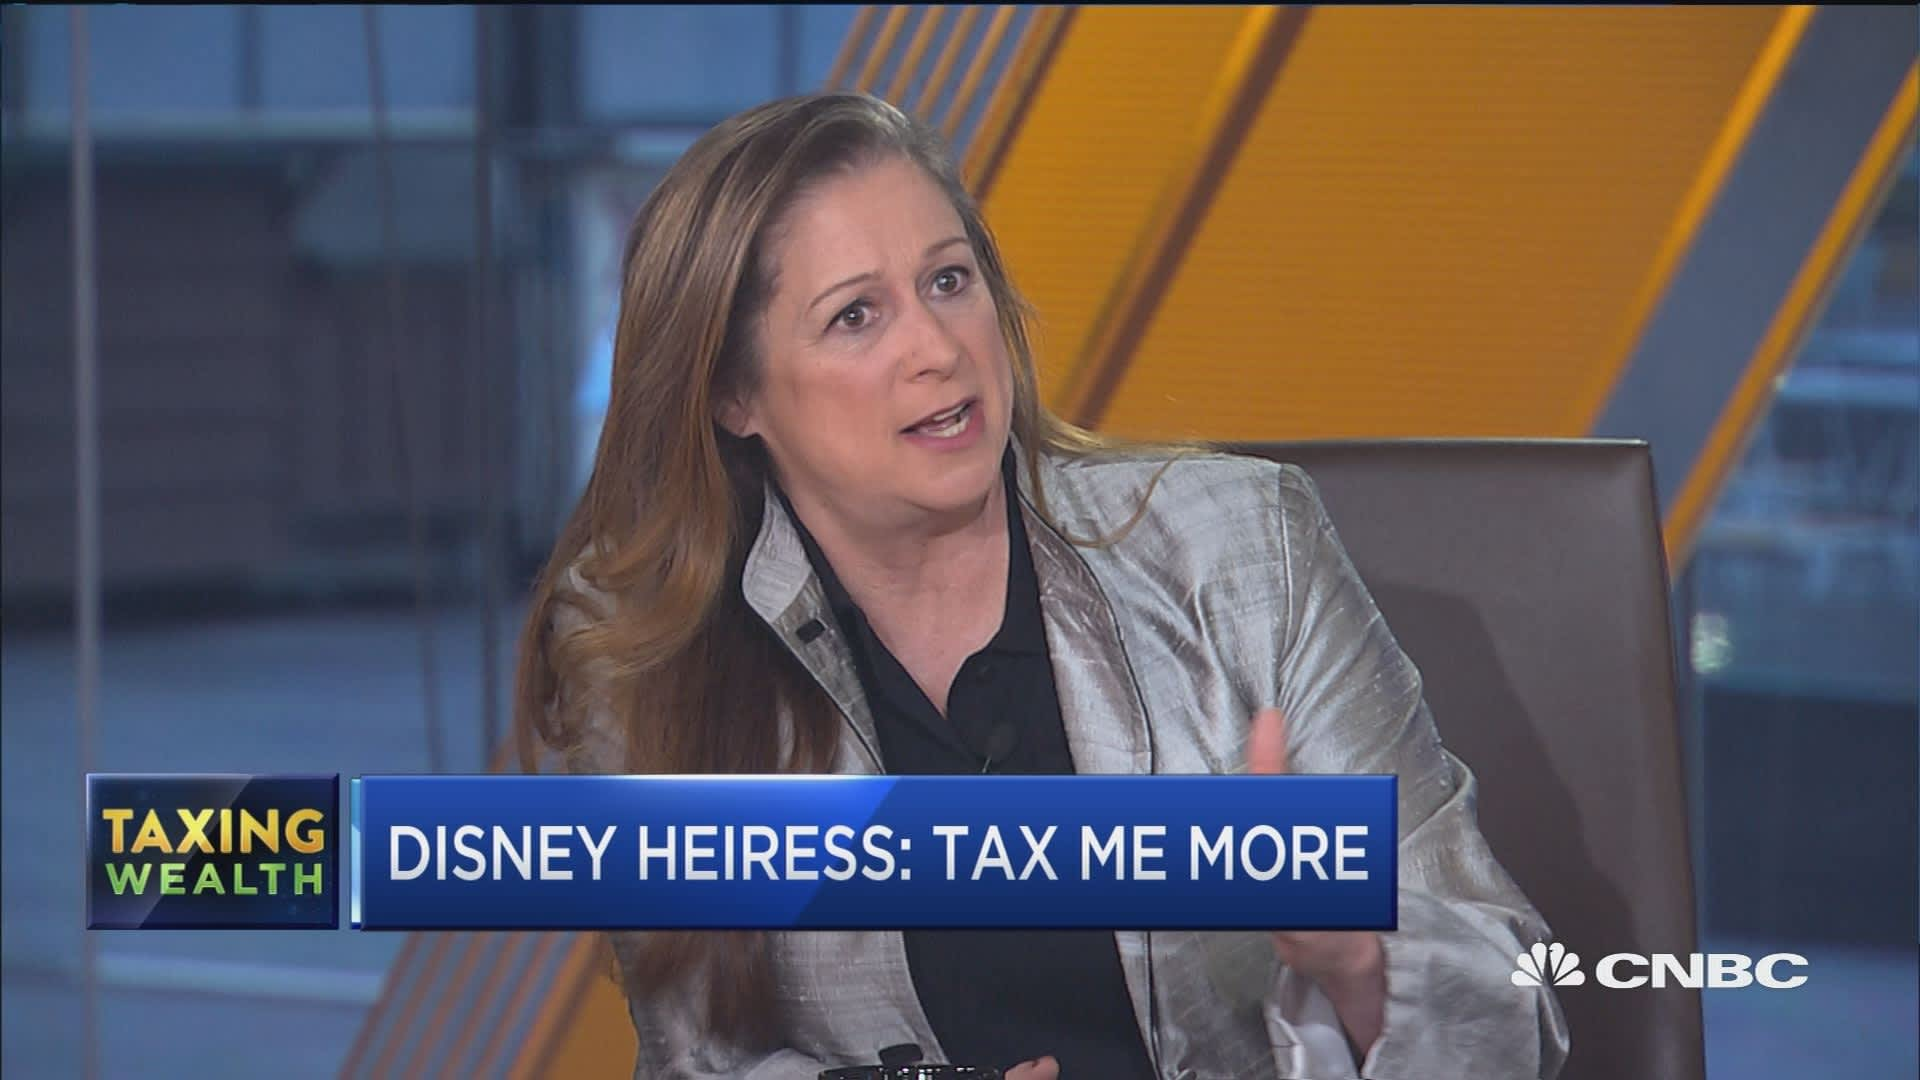 'Jesus Christ himself isn't worth 500 times his median worker pay in companies' — Disney heiress slams CEO pay